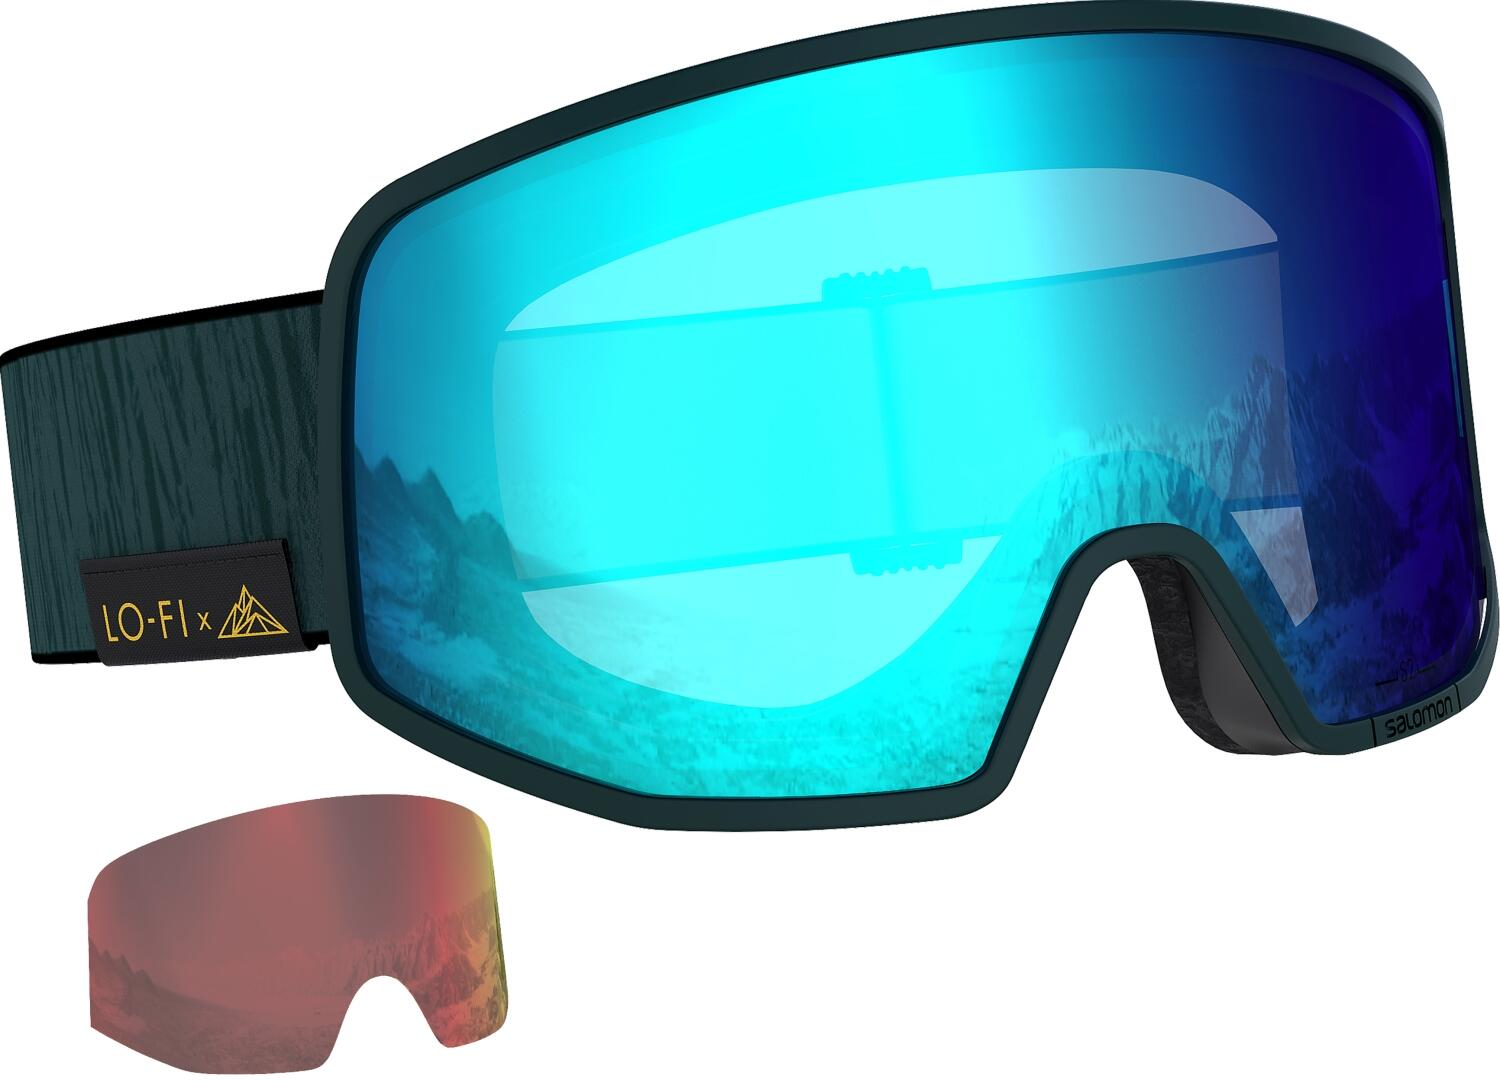 salomon-lo-fi-skibrille-farbe-green-gables-scheibe-mid-blue-extra-scheibe-mid-red-